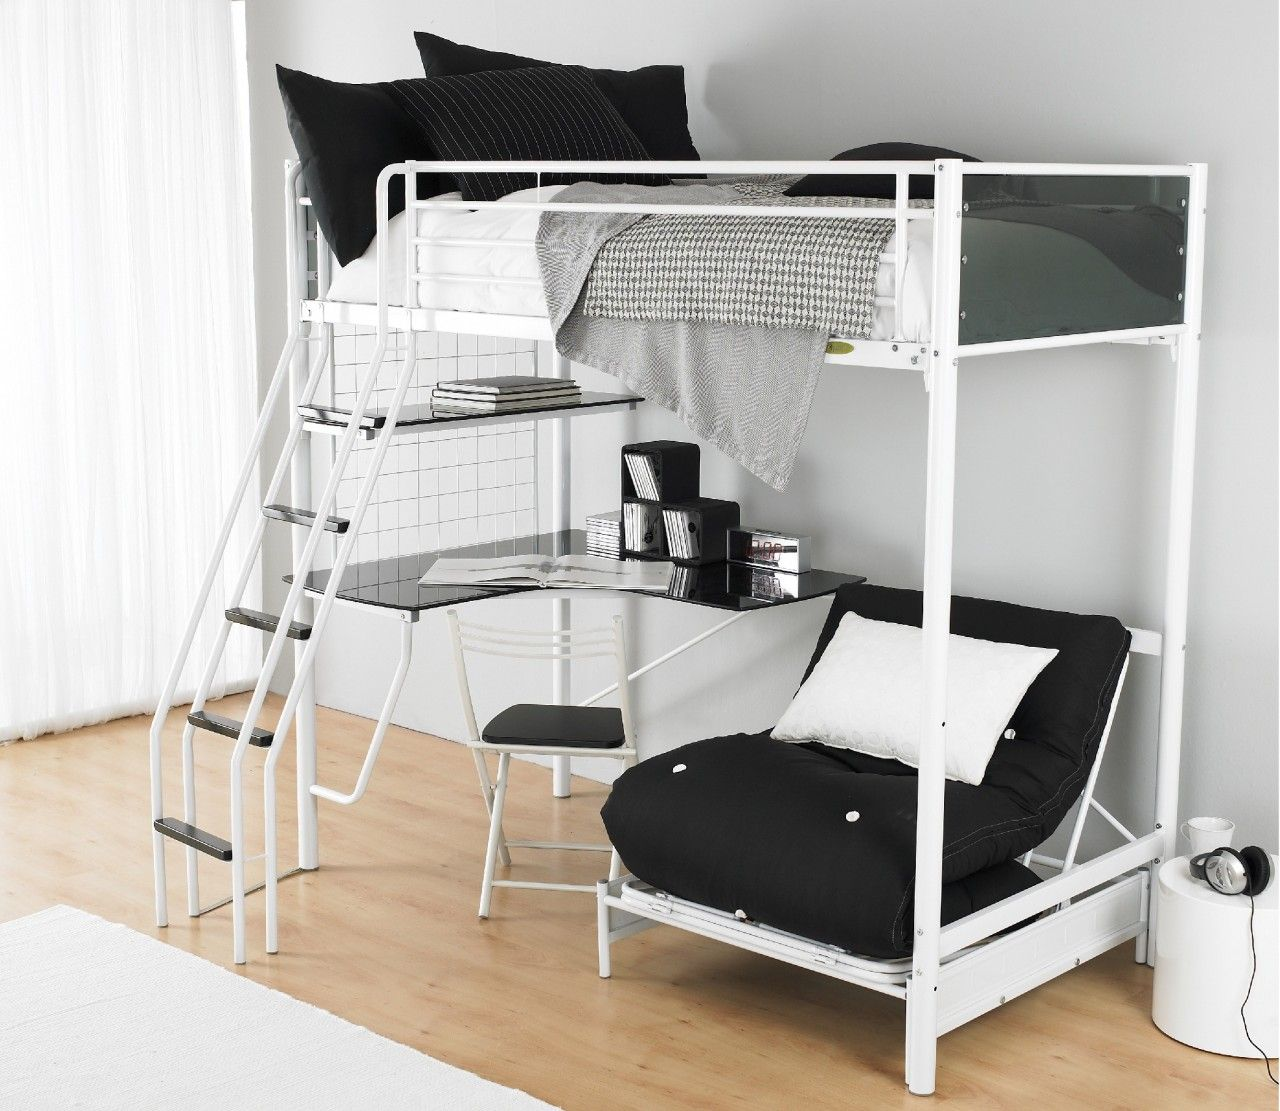 Bed With Desk 20 Cool Bunk Bed With Desk Designs Chambre à Coucher Futon